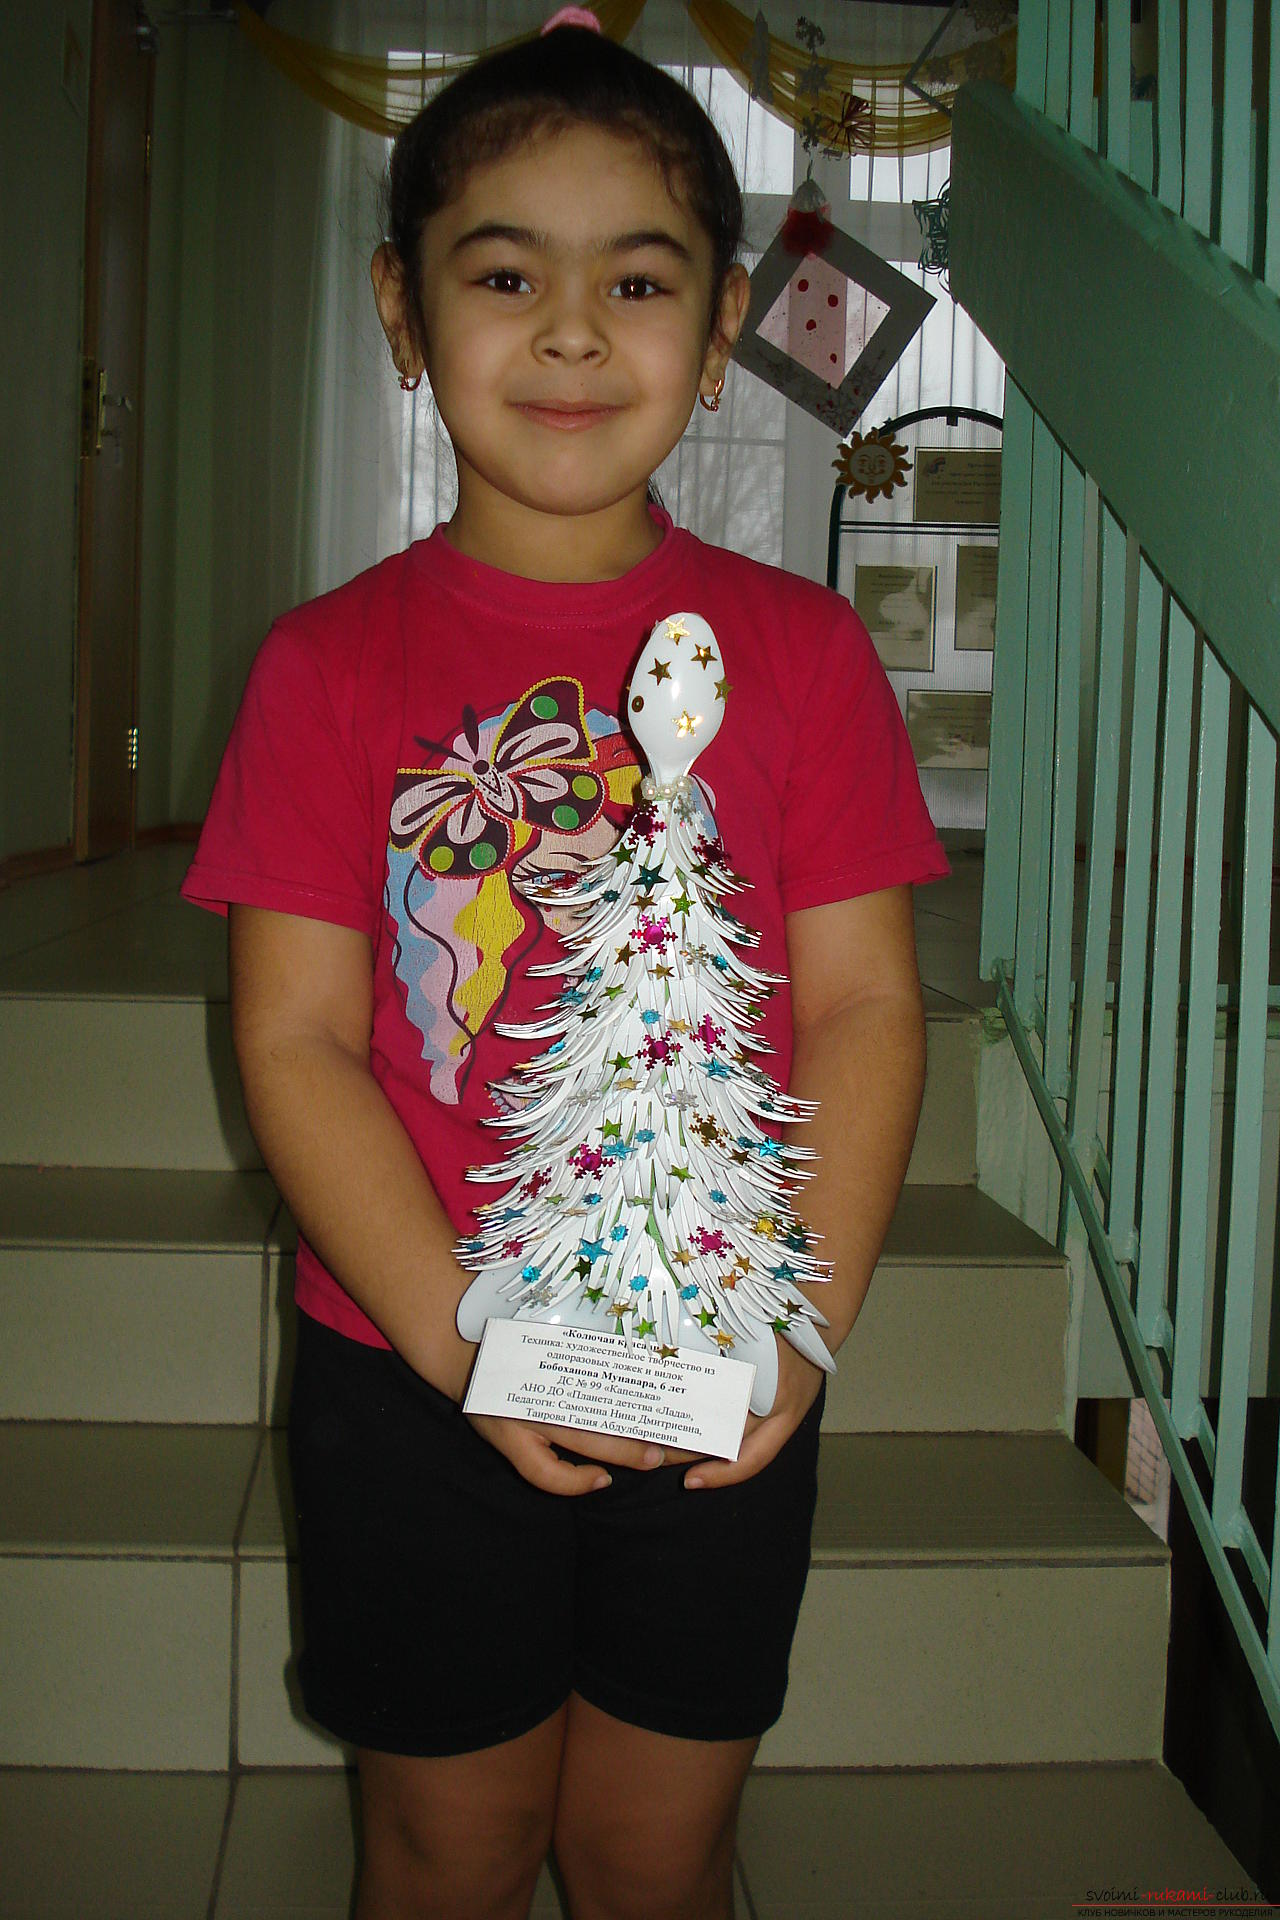 interesting New Year's crafts we have turned out of junk material. Different Christmas trees decorate not only the house, but our group in the kindergarten. Photo # 5